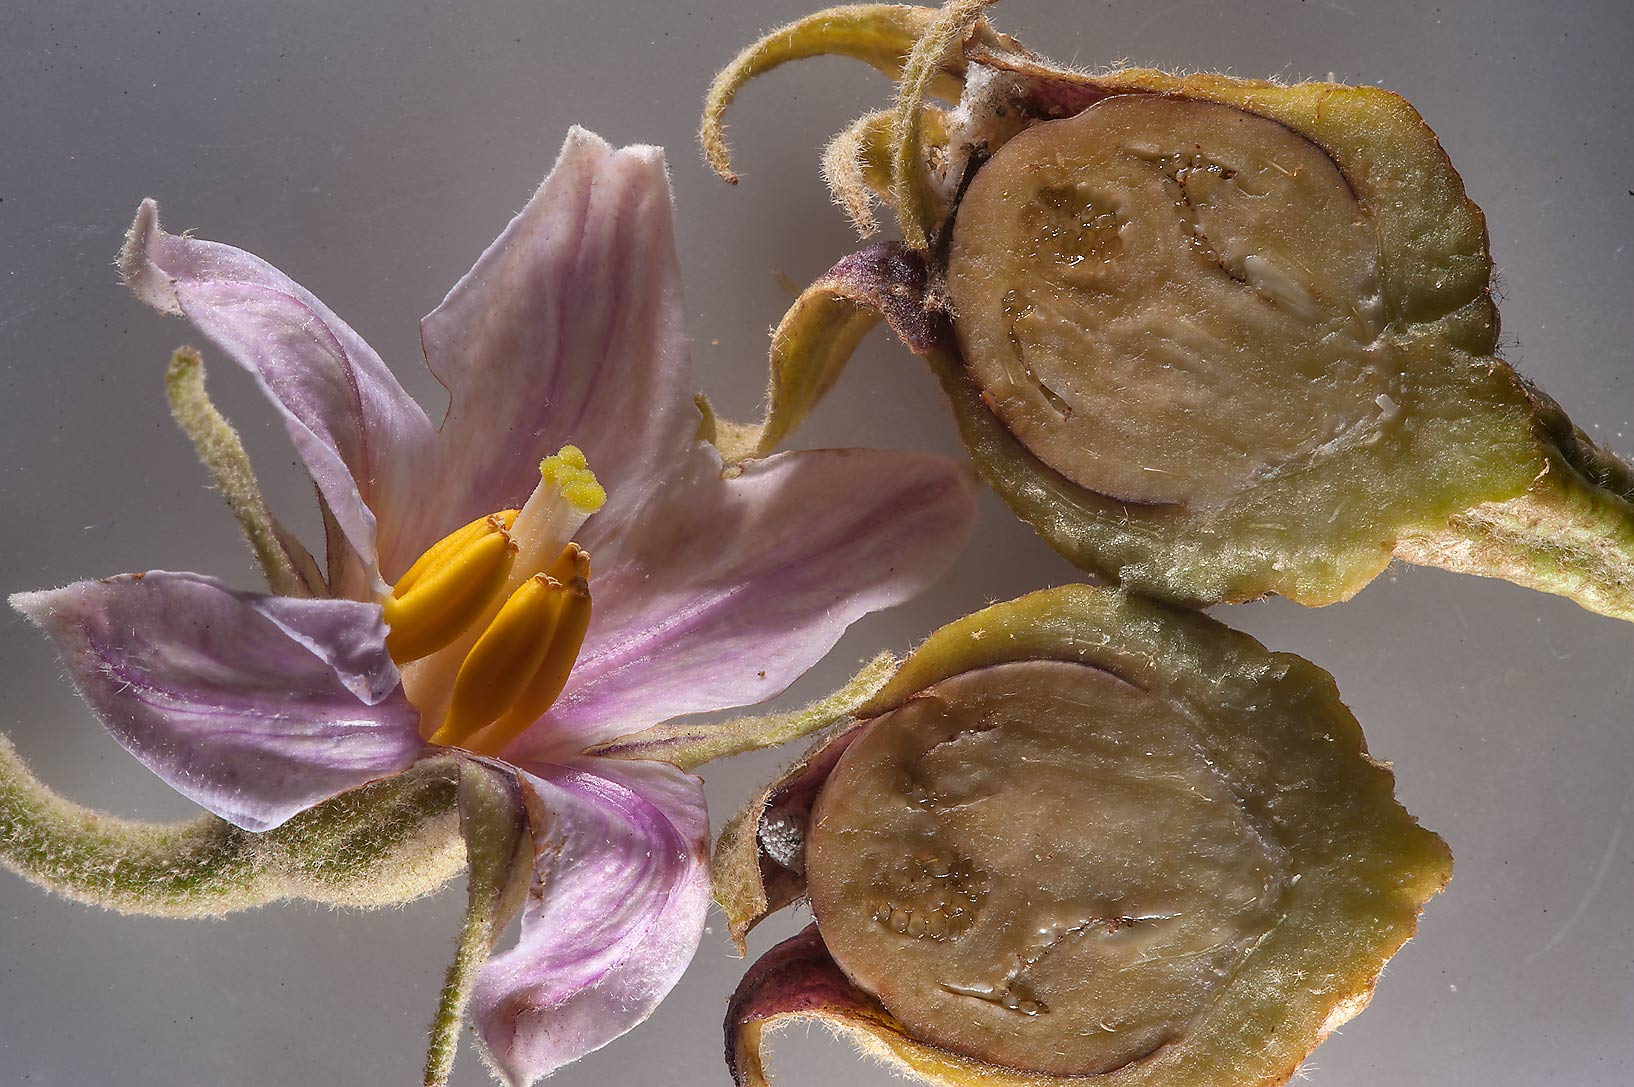 Flower and a dissected ovary of eggplant (Solanum...between Mesayeed and Harrarah. Qatar